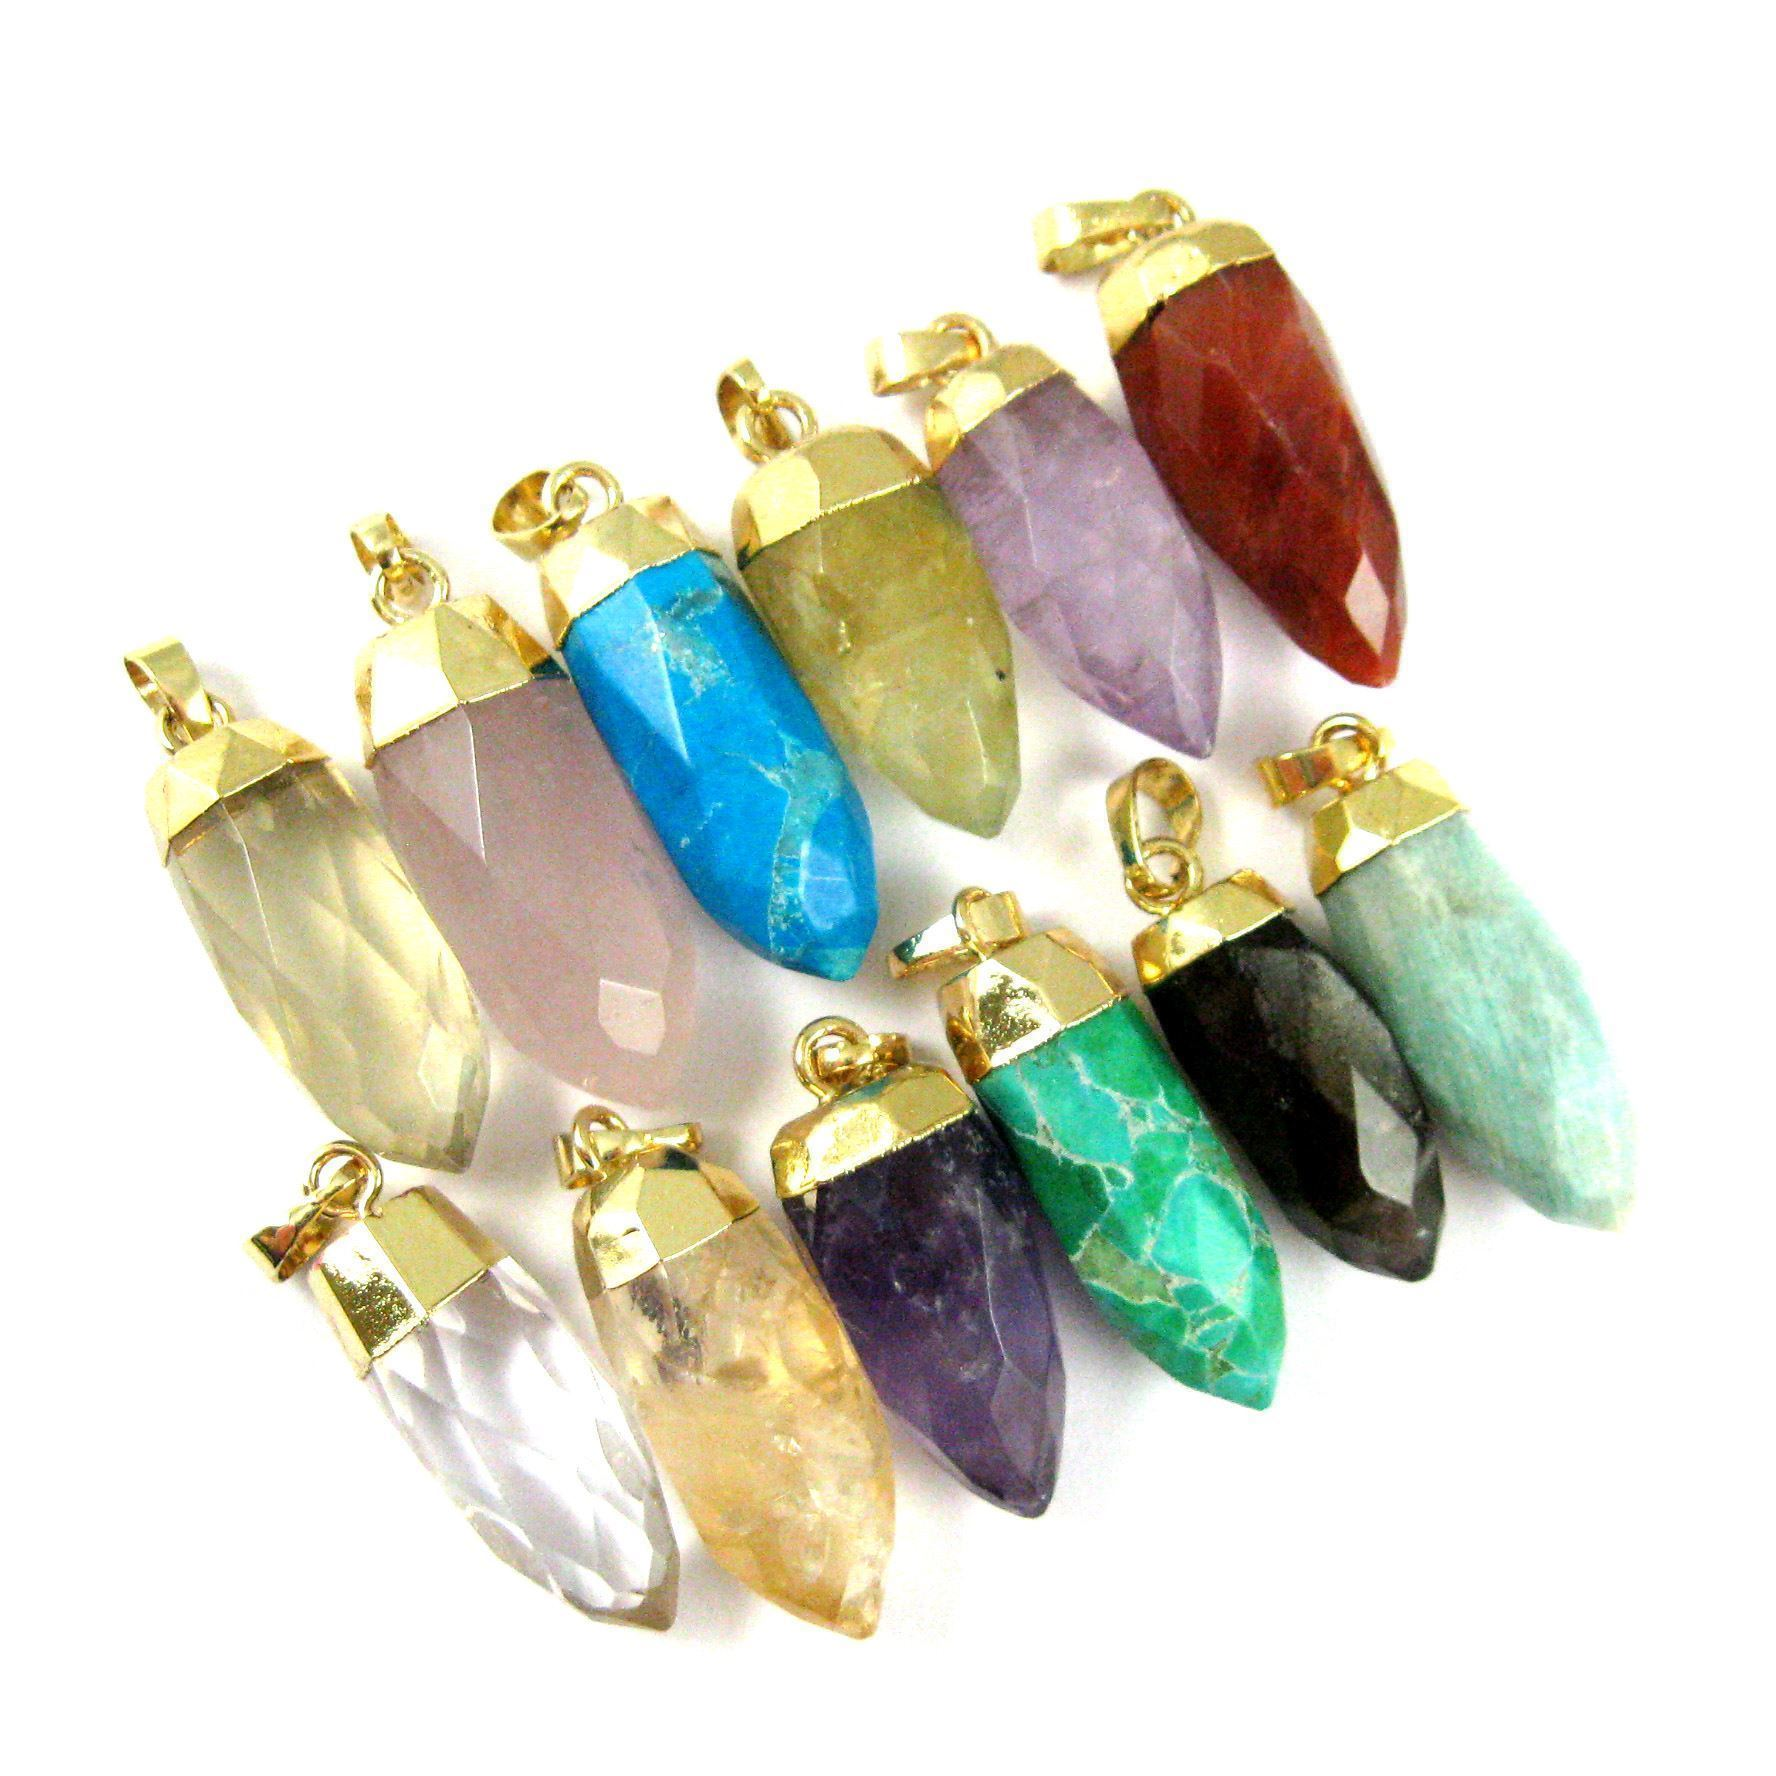 Gemstone Spike Pendant, Faceted Druzy Spike Pendant,Rose Quartz Pendant with Gold plated Bail- 30mm